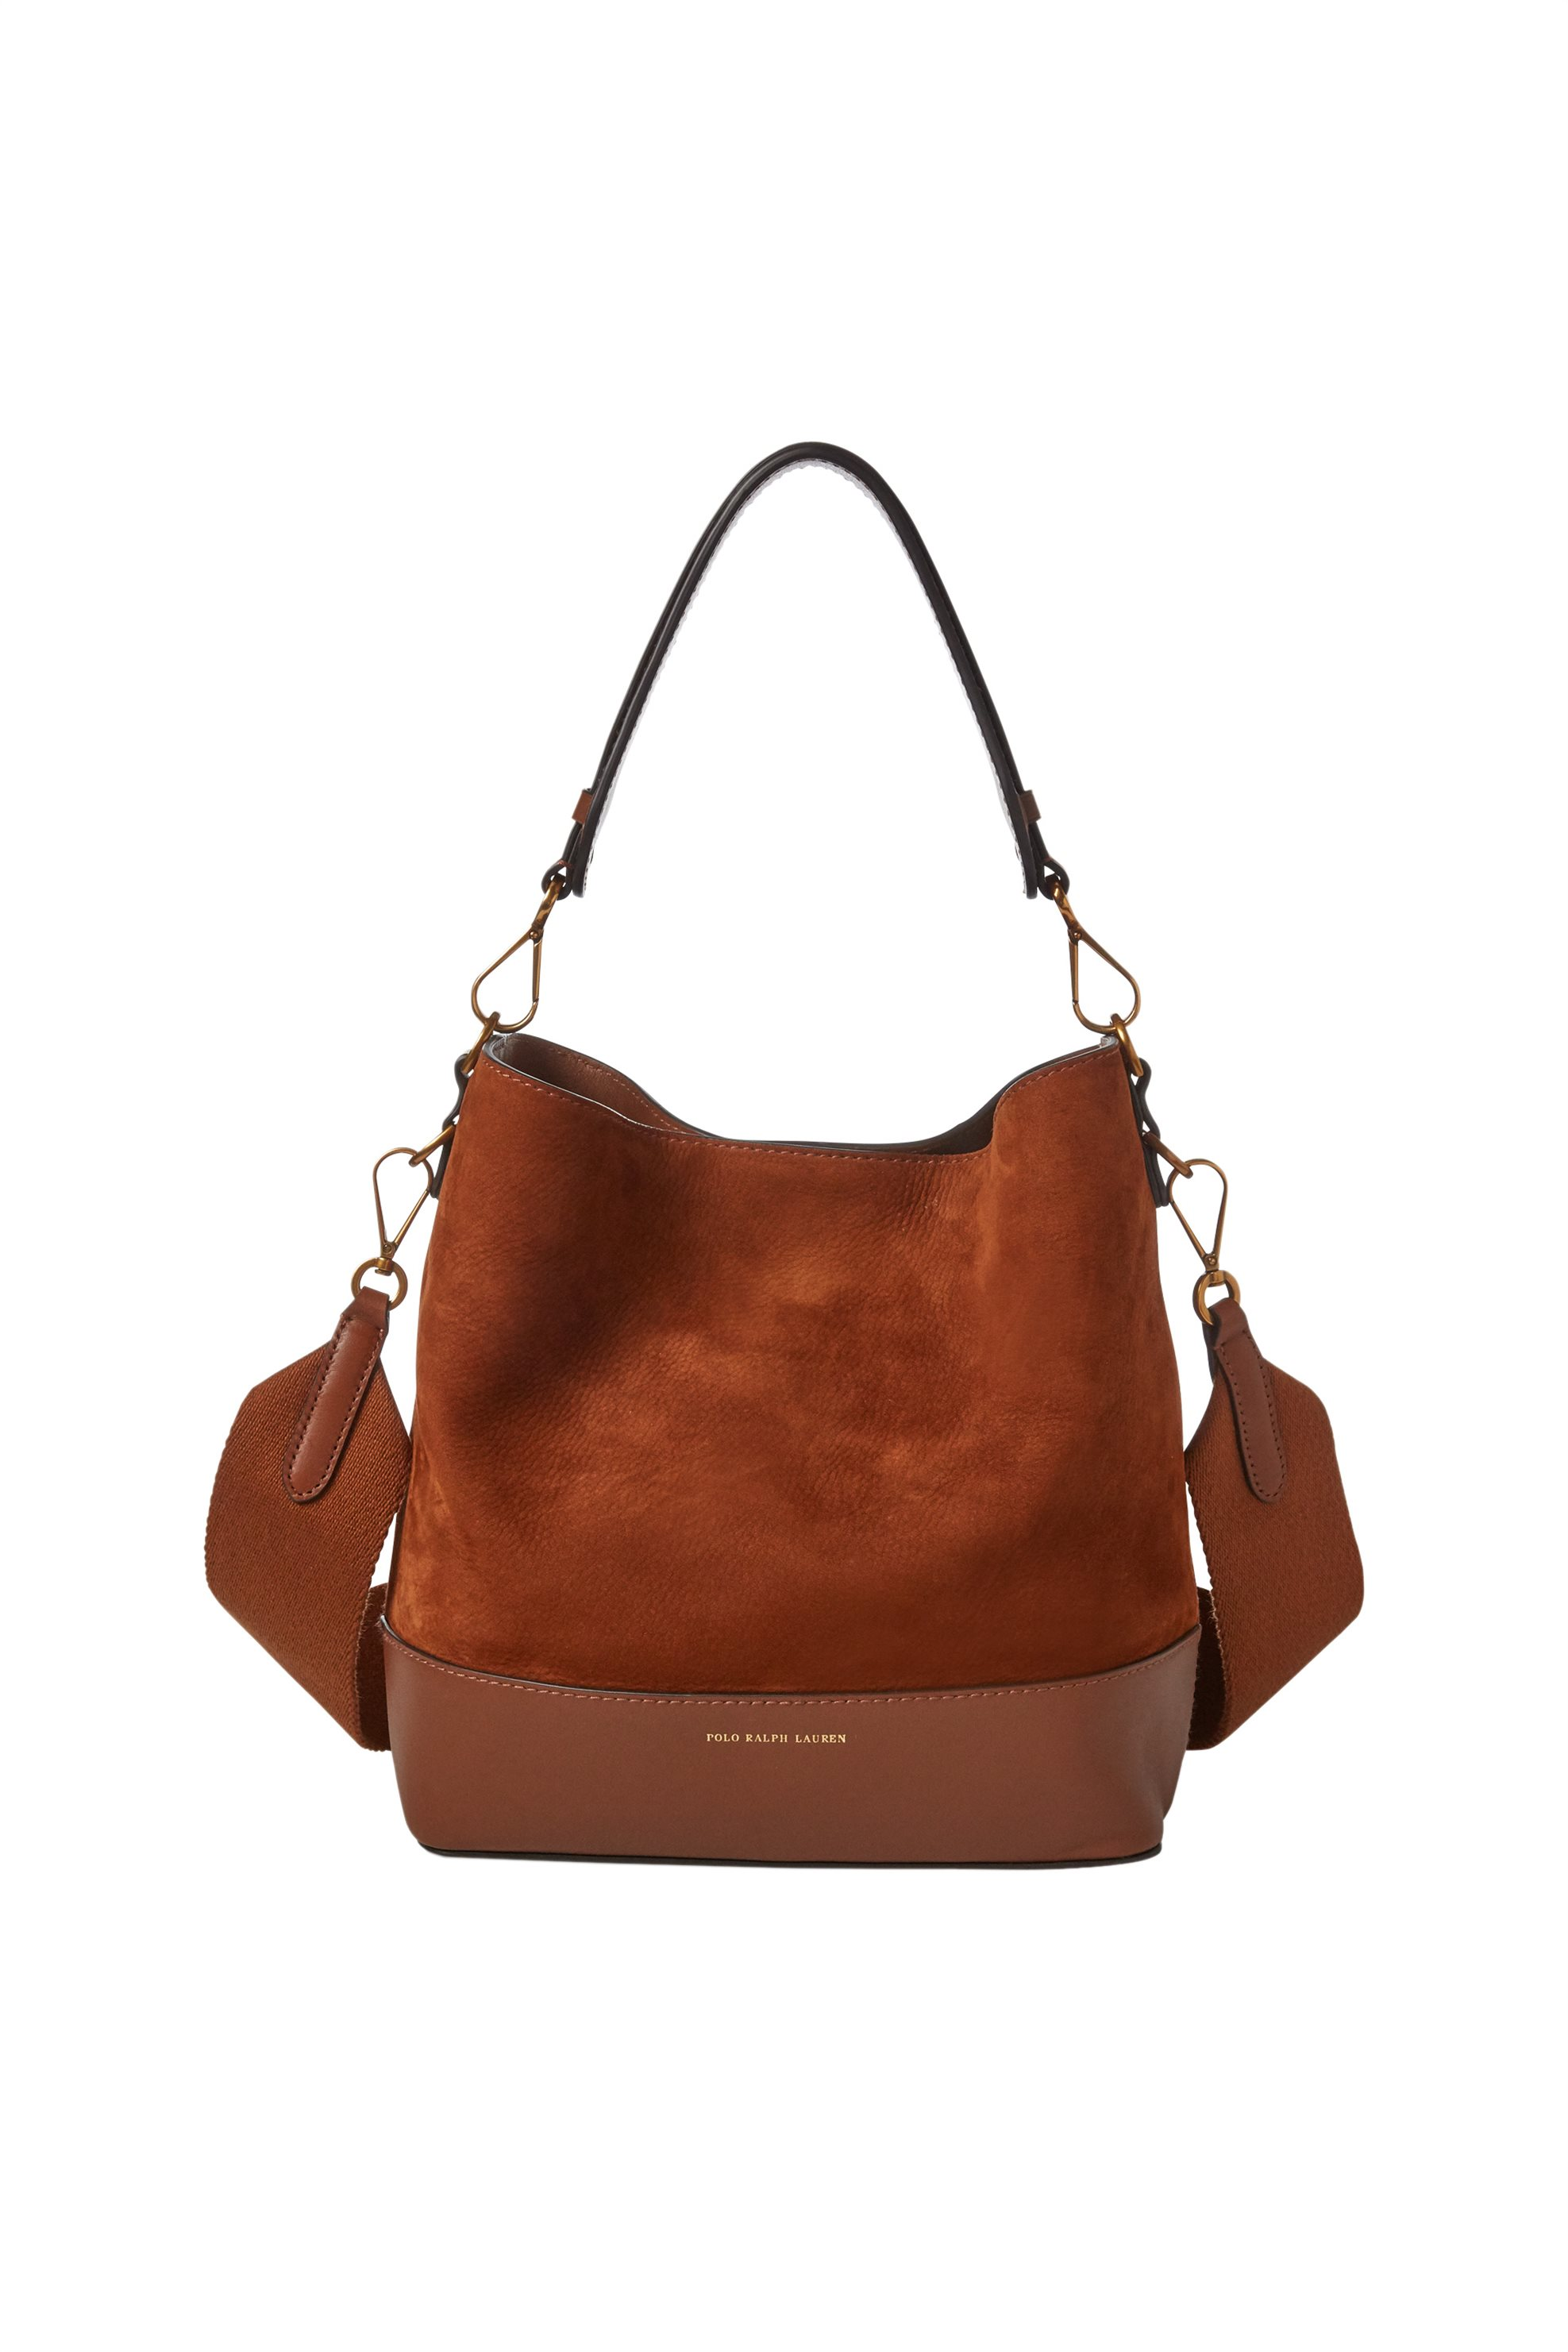 Polo Ralph Lauren γυναικεία τσάντα καφέ Small Suede Leather Hobo Bag - 428714748 γυναικα   τσαντεσ   ώμου   shopper bags